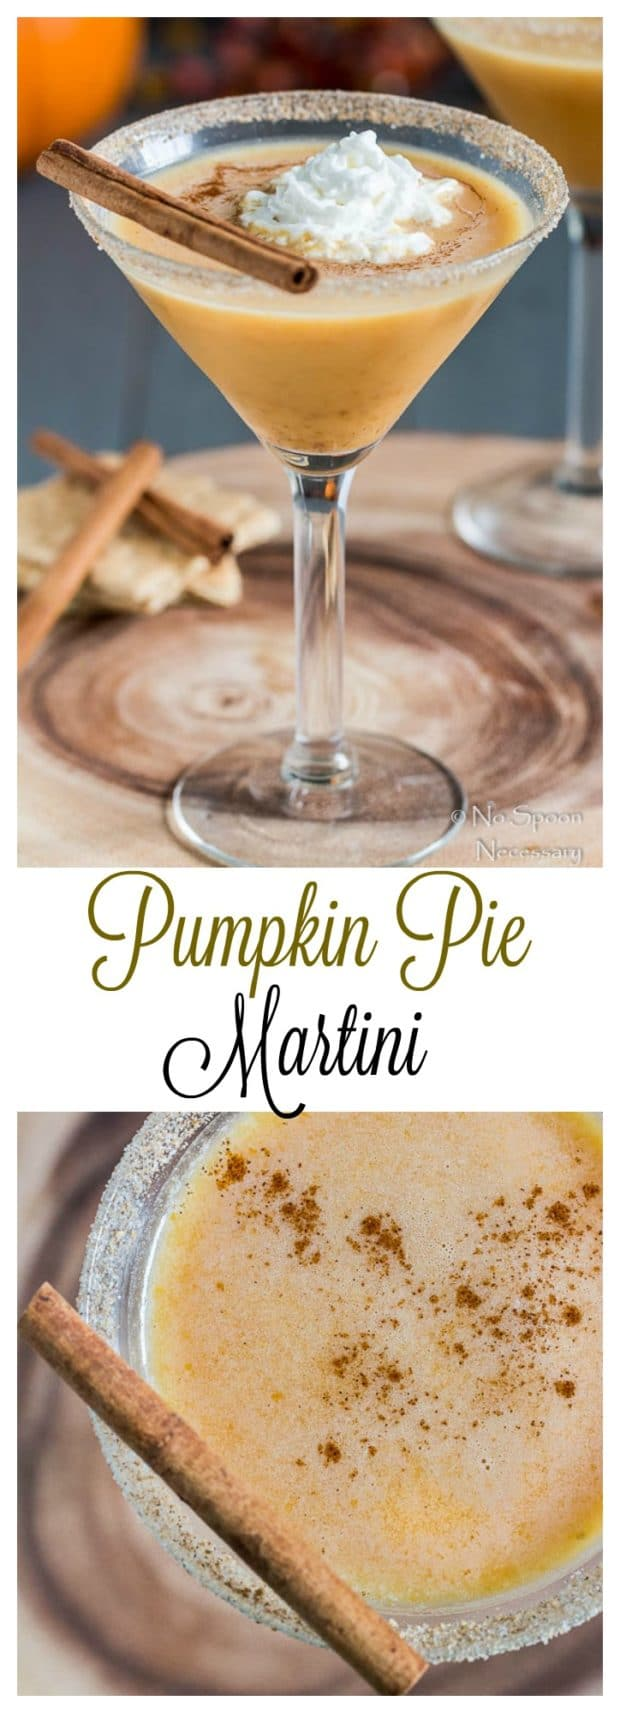 Pumpkin Pie Martini 1